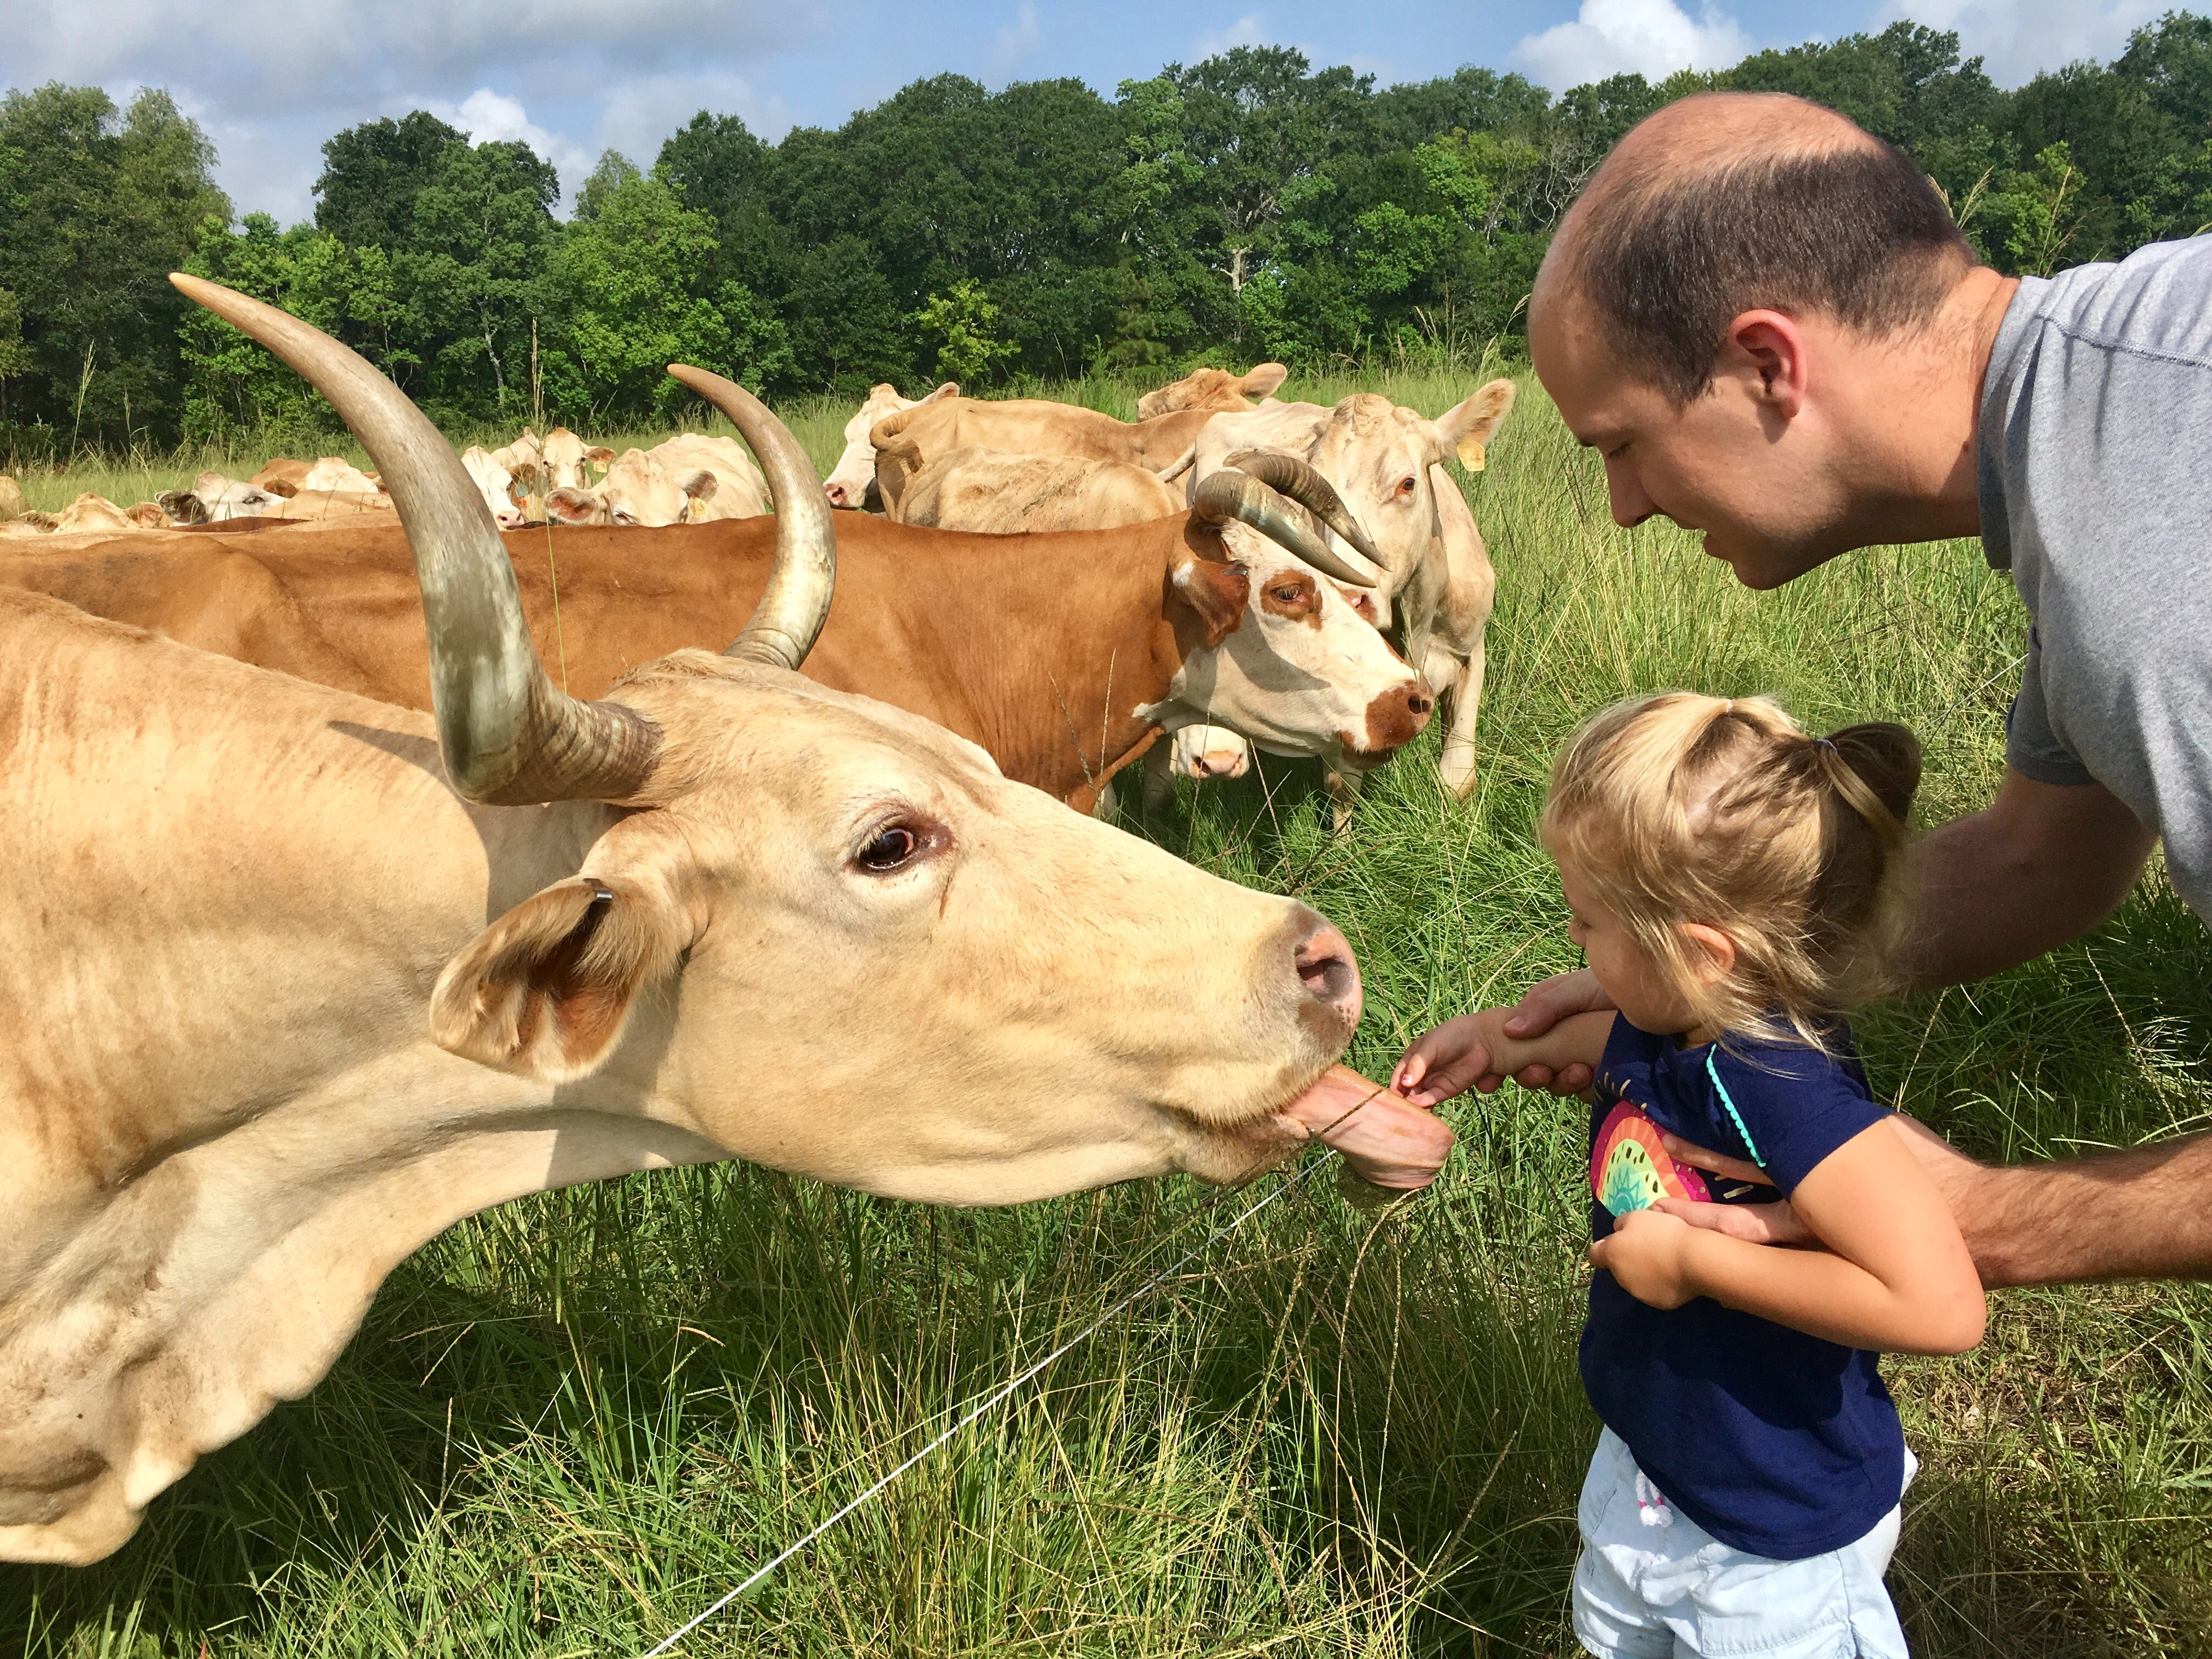 Eric Guidry helps daughter Avery, 4, feed grass to Beva the cow during a family trip to Brookshire Farm in Abbeville July 20, 2018.